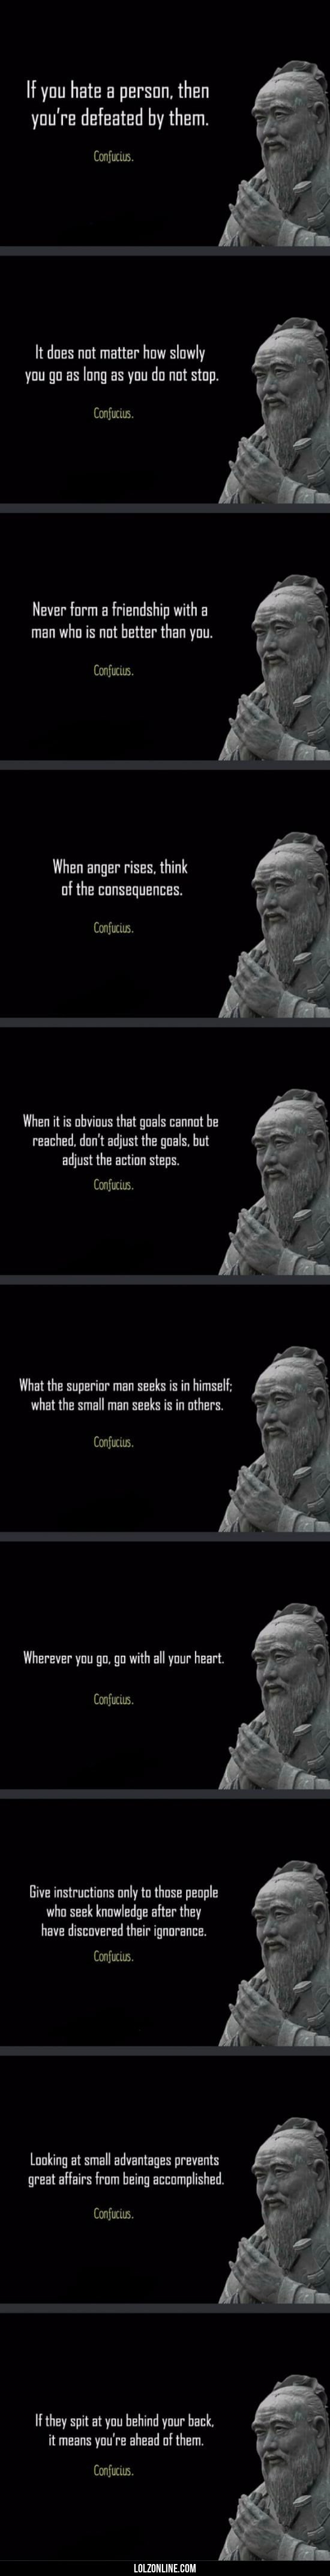 Confucius says this title is clever.#funny #lol #lolzonline